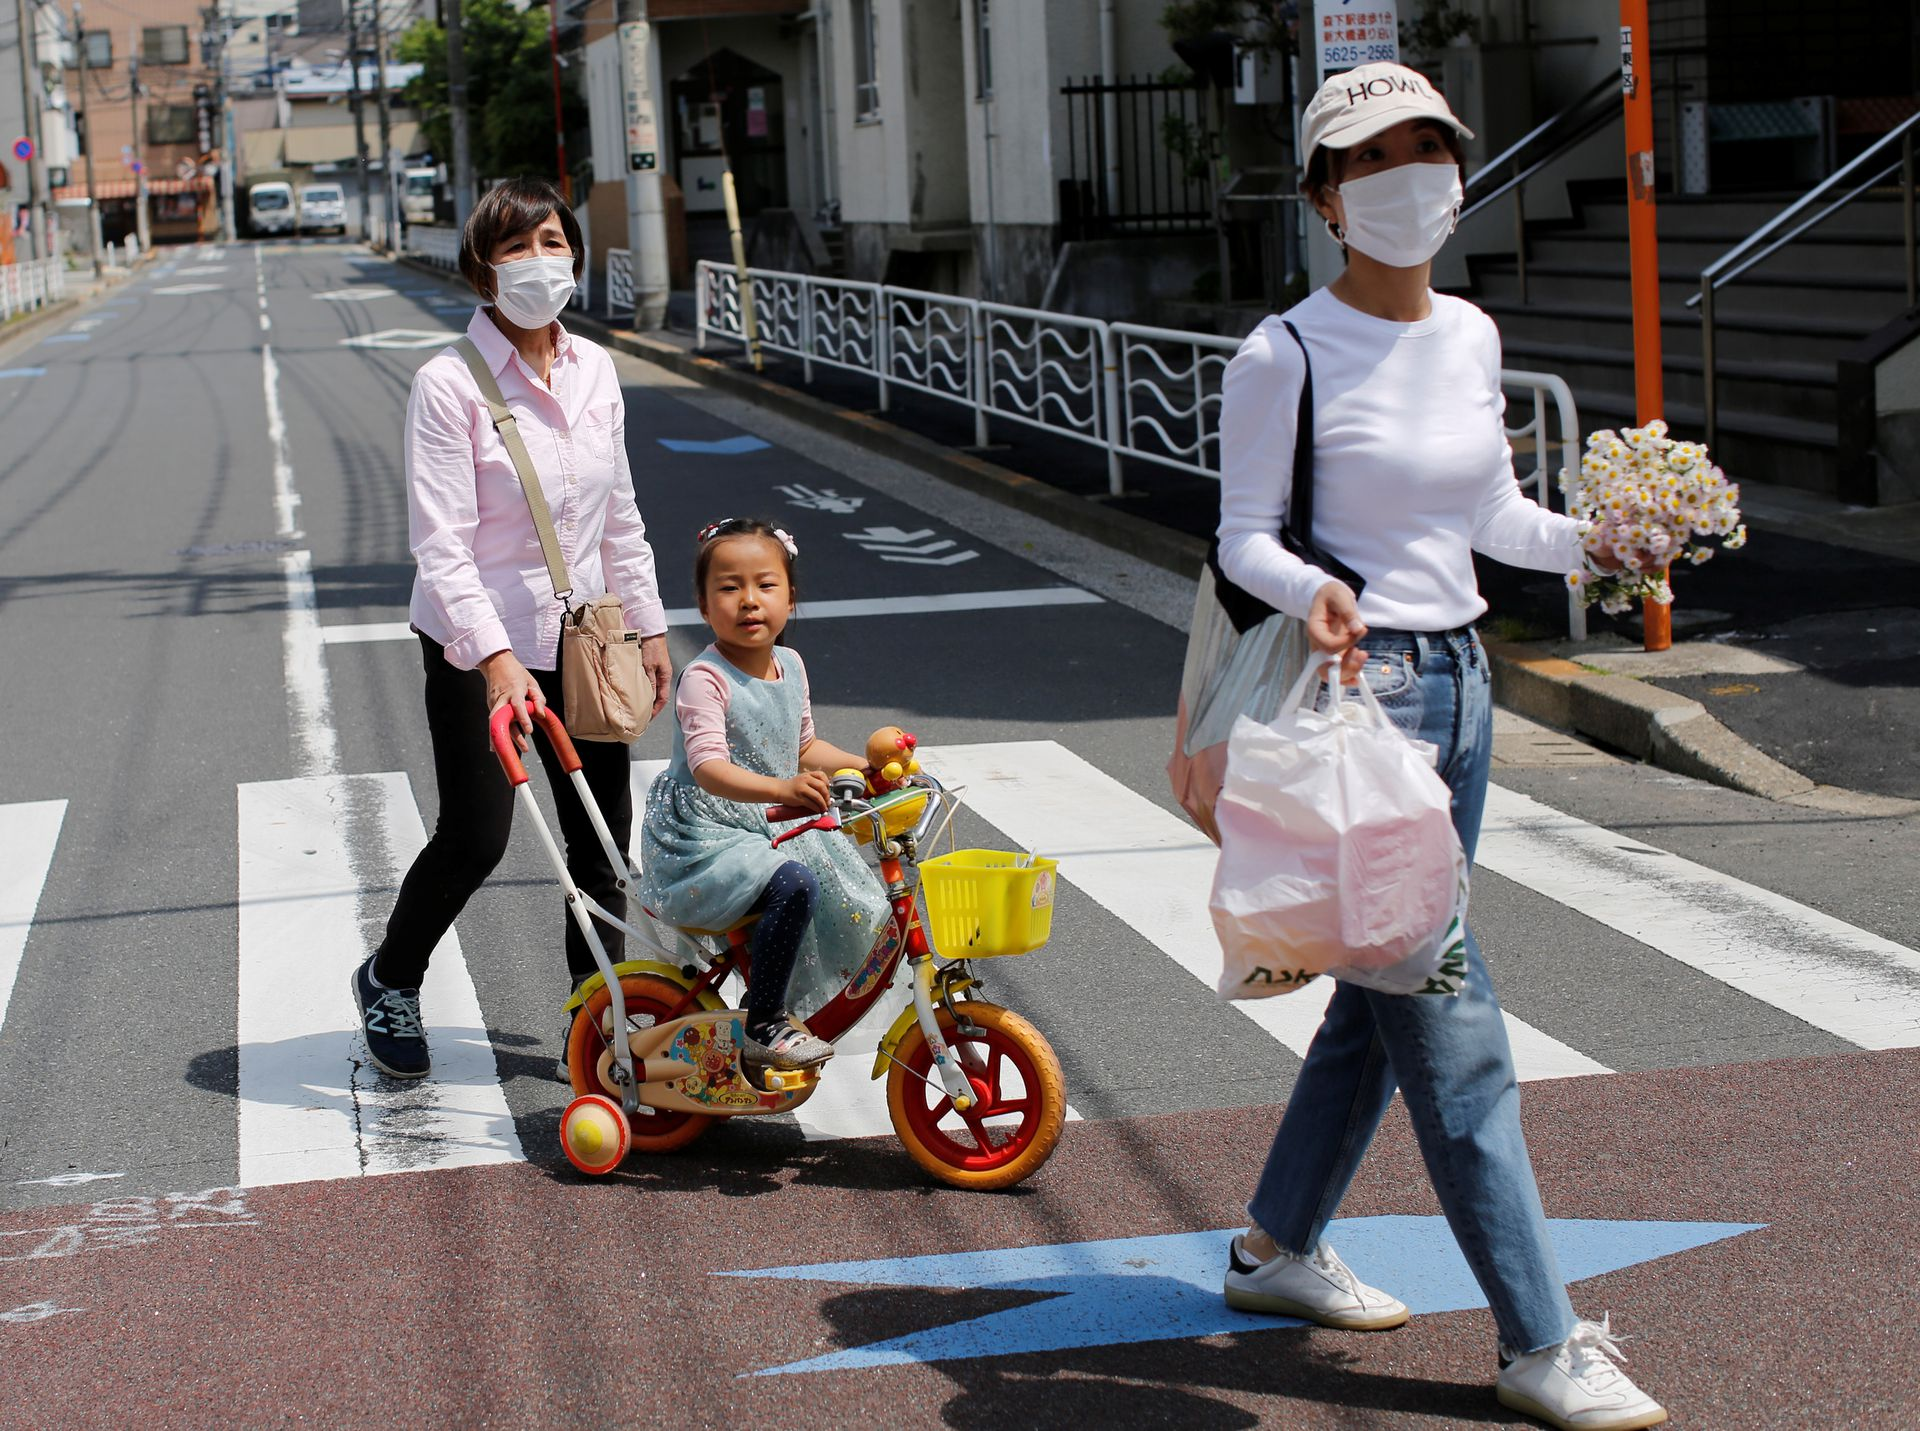 Tami Shimada, 69, a member of a senior cheer squad called Japan Pom Pom, walks home from the park with her granddaughter Elisa, 4, and daughter-in-law Tomoko, 44, in Tokyo, Japan, April 25, 2021. Photo: Reuters